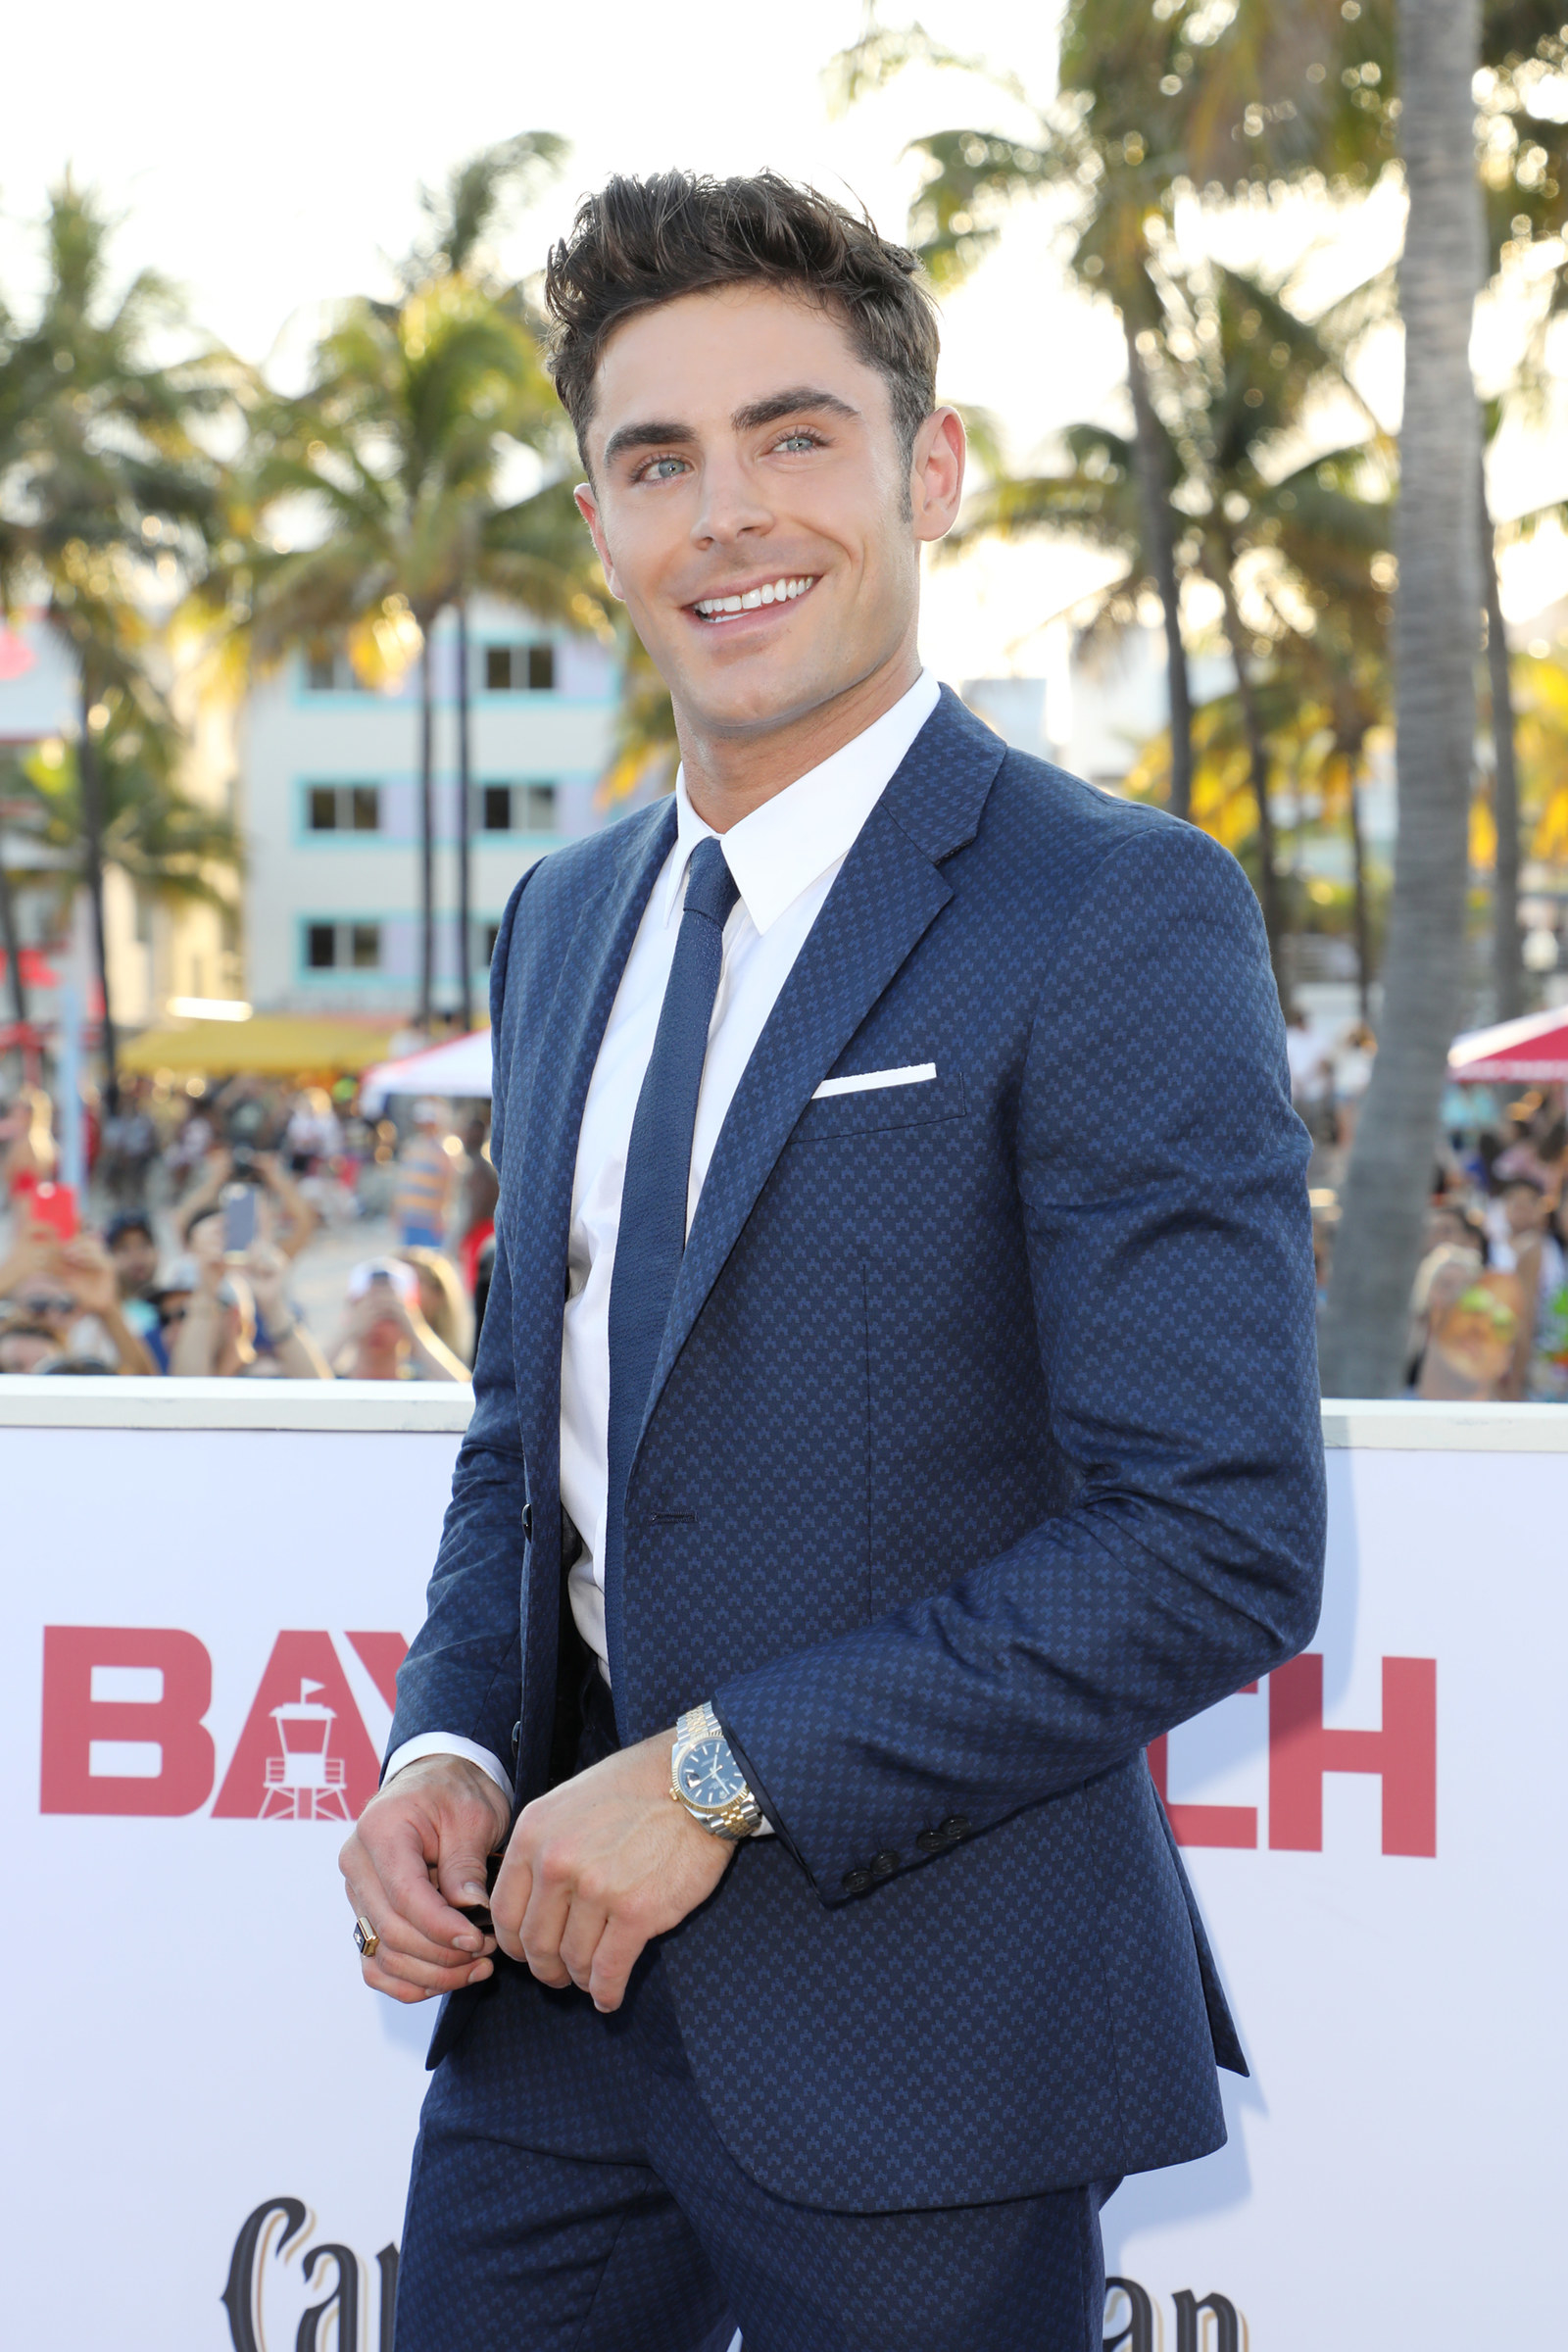 Just A Reminder That Zac Efron Has A Really Hot Brother Hi  it s me  Cap n obvious here to say that Zac Efron is hot  DUH